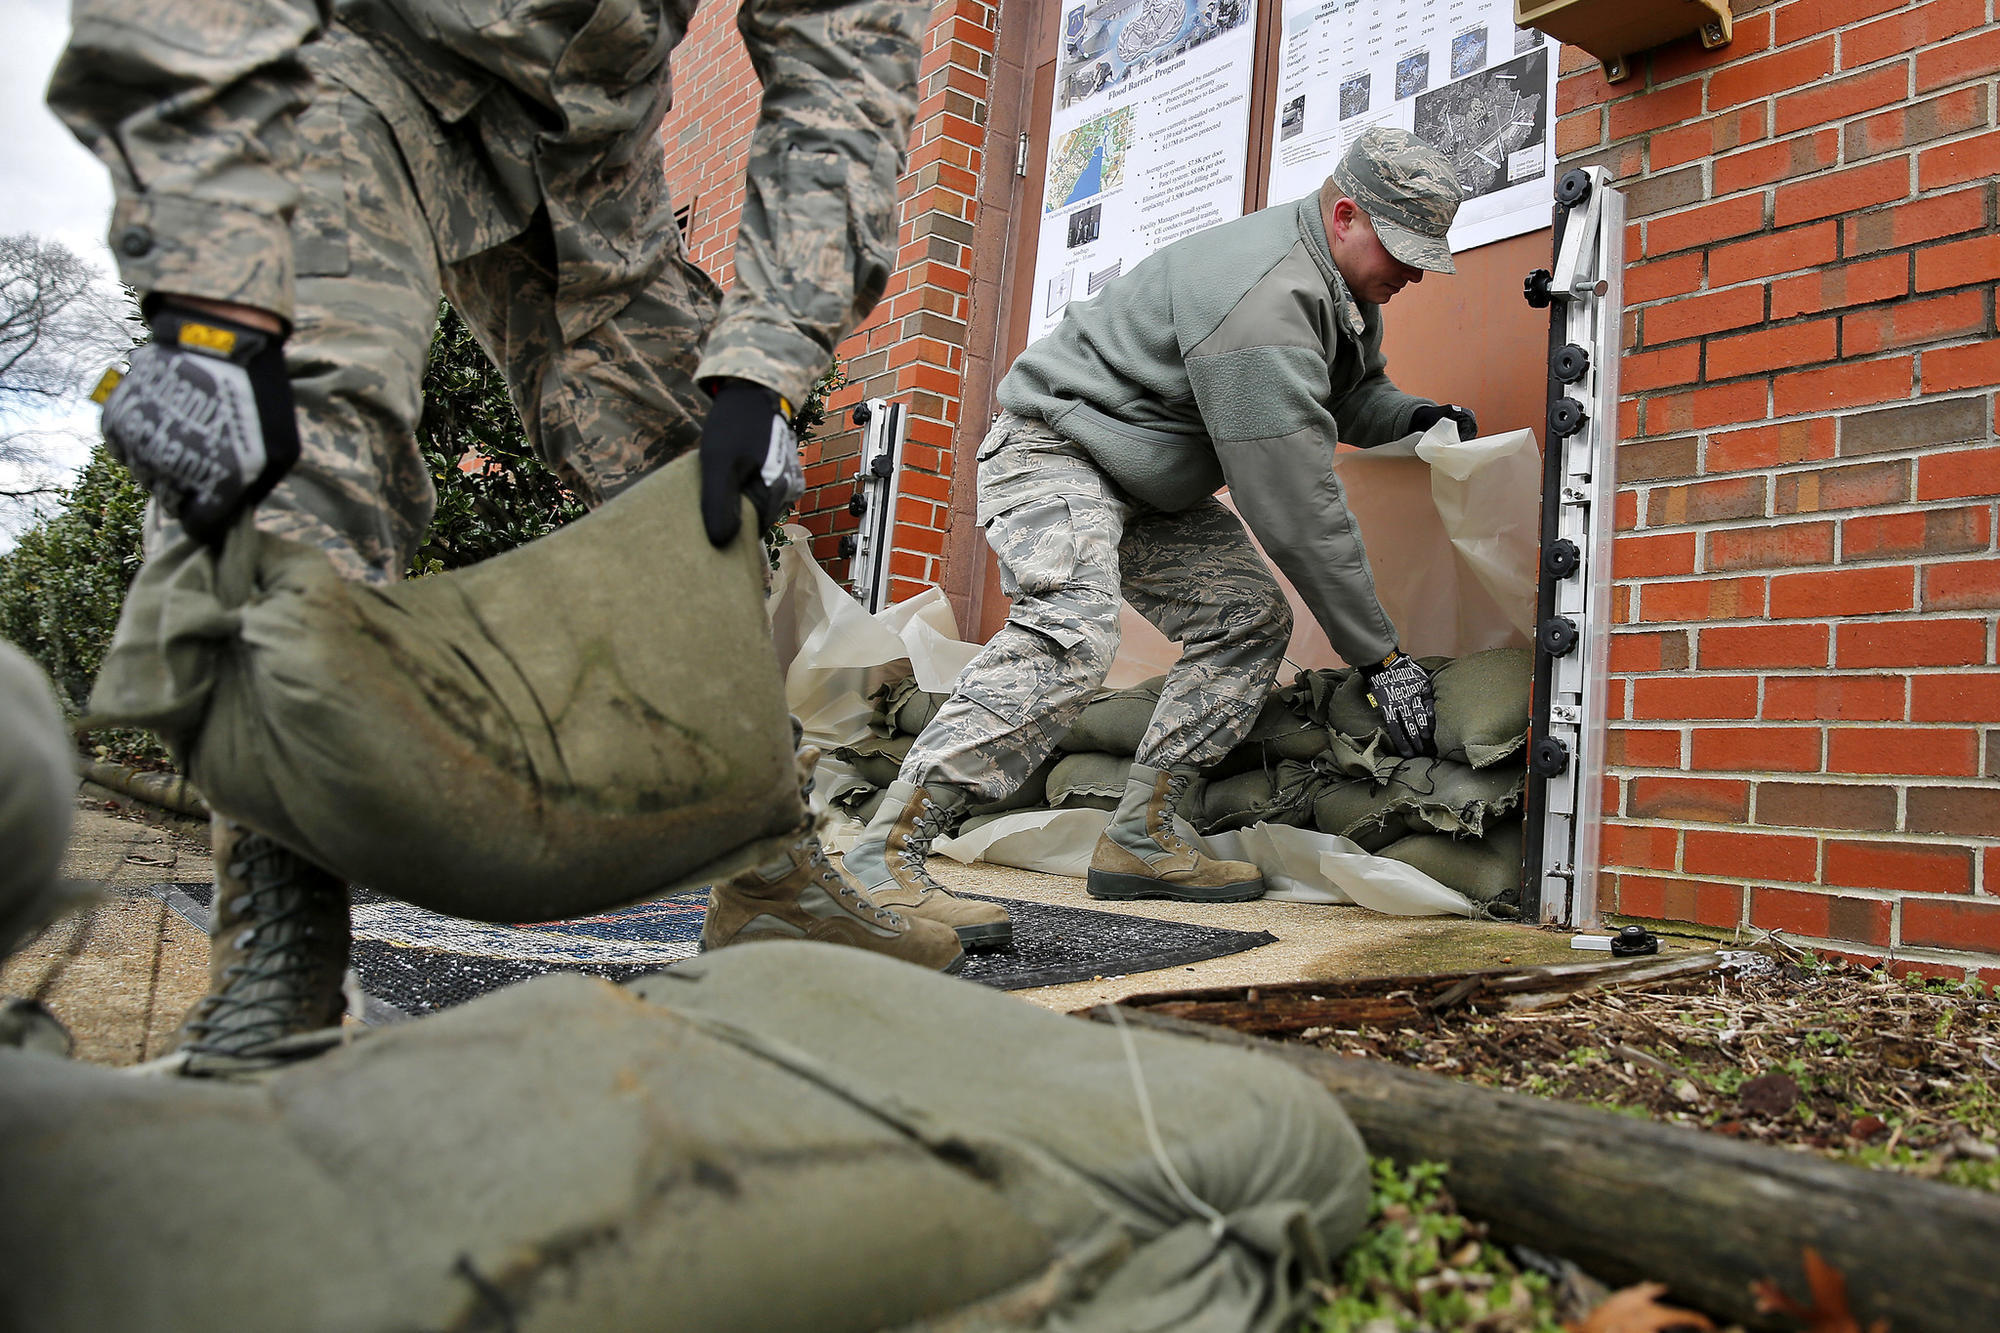 Langley Air Force Base Battles Sea Level Rise Daily Press